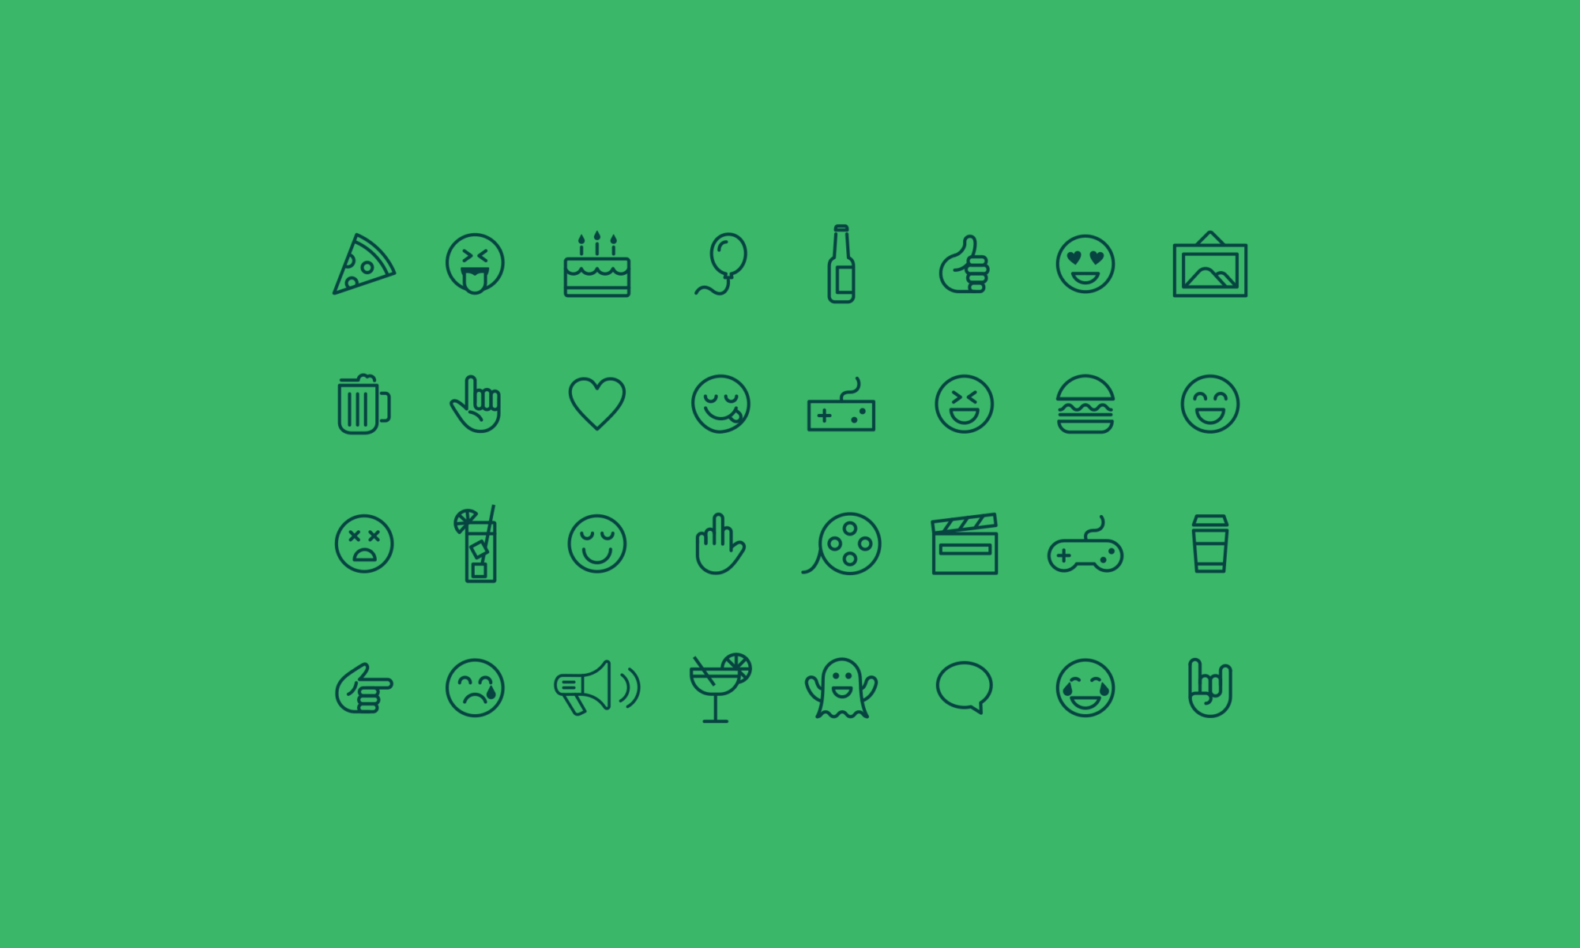 Collection of custom emojis for the See+Do event website.